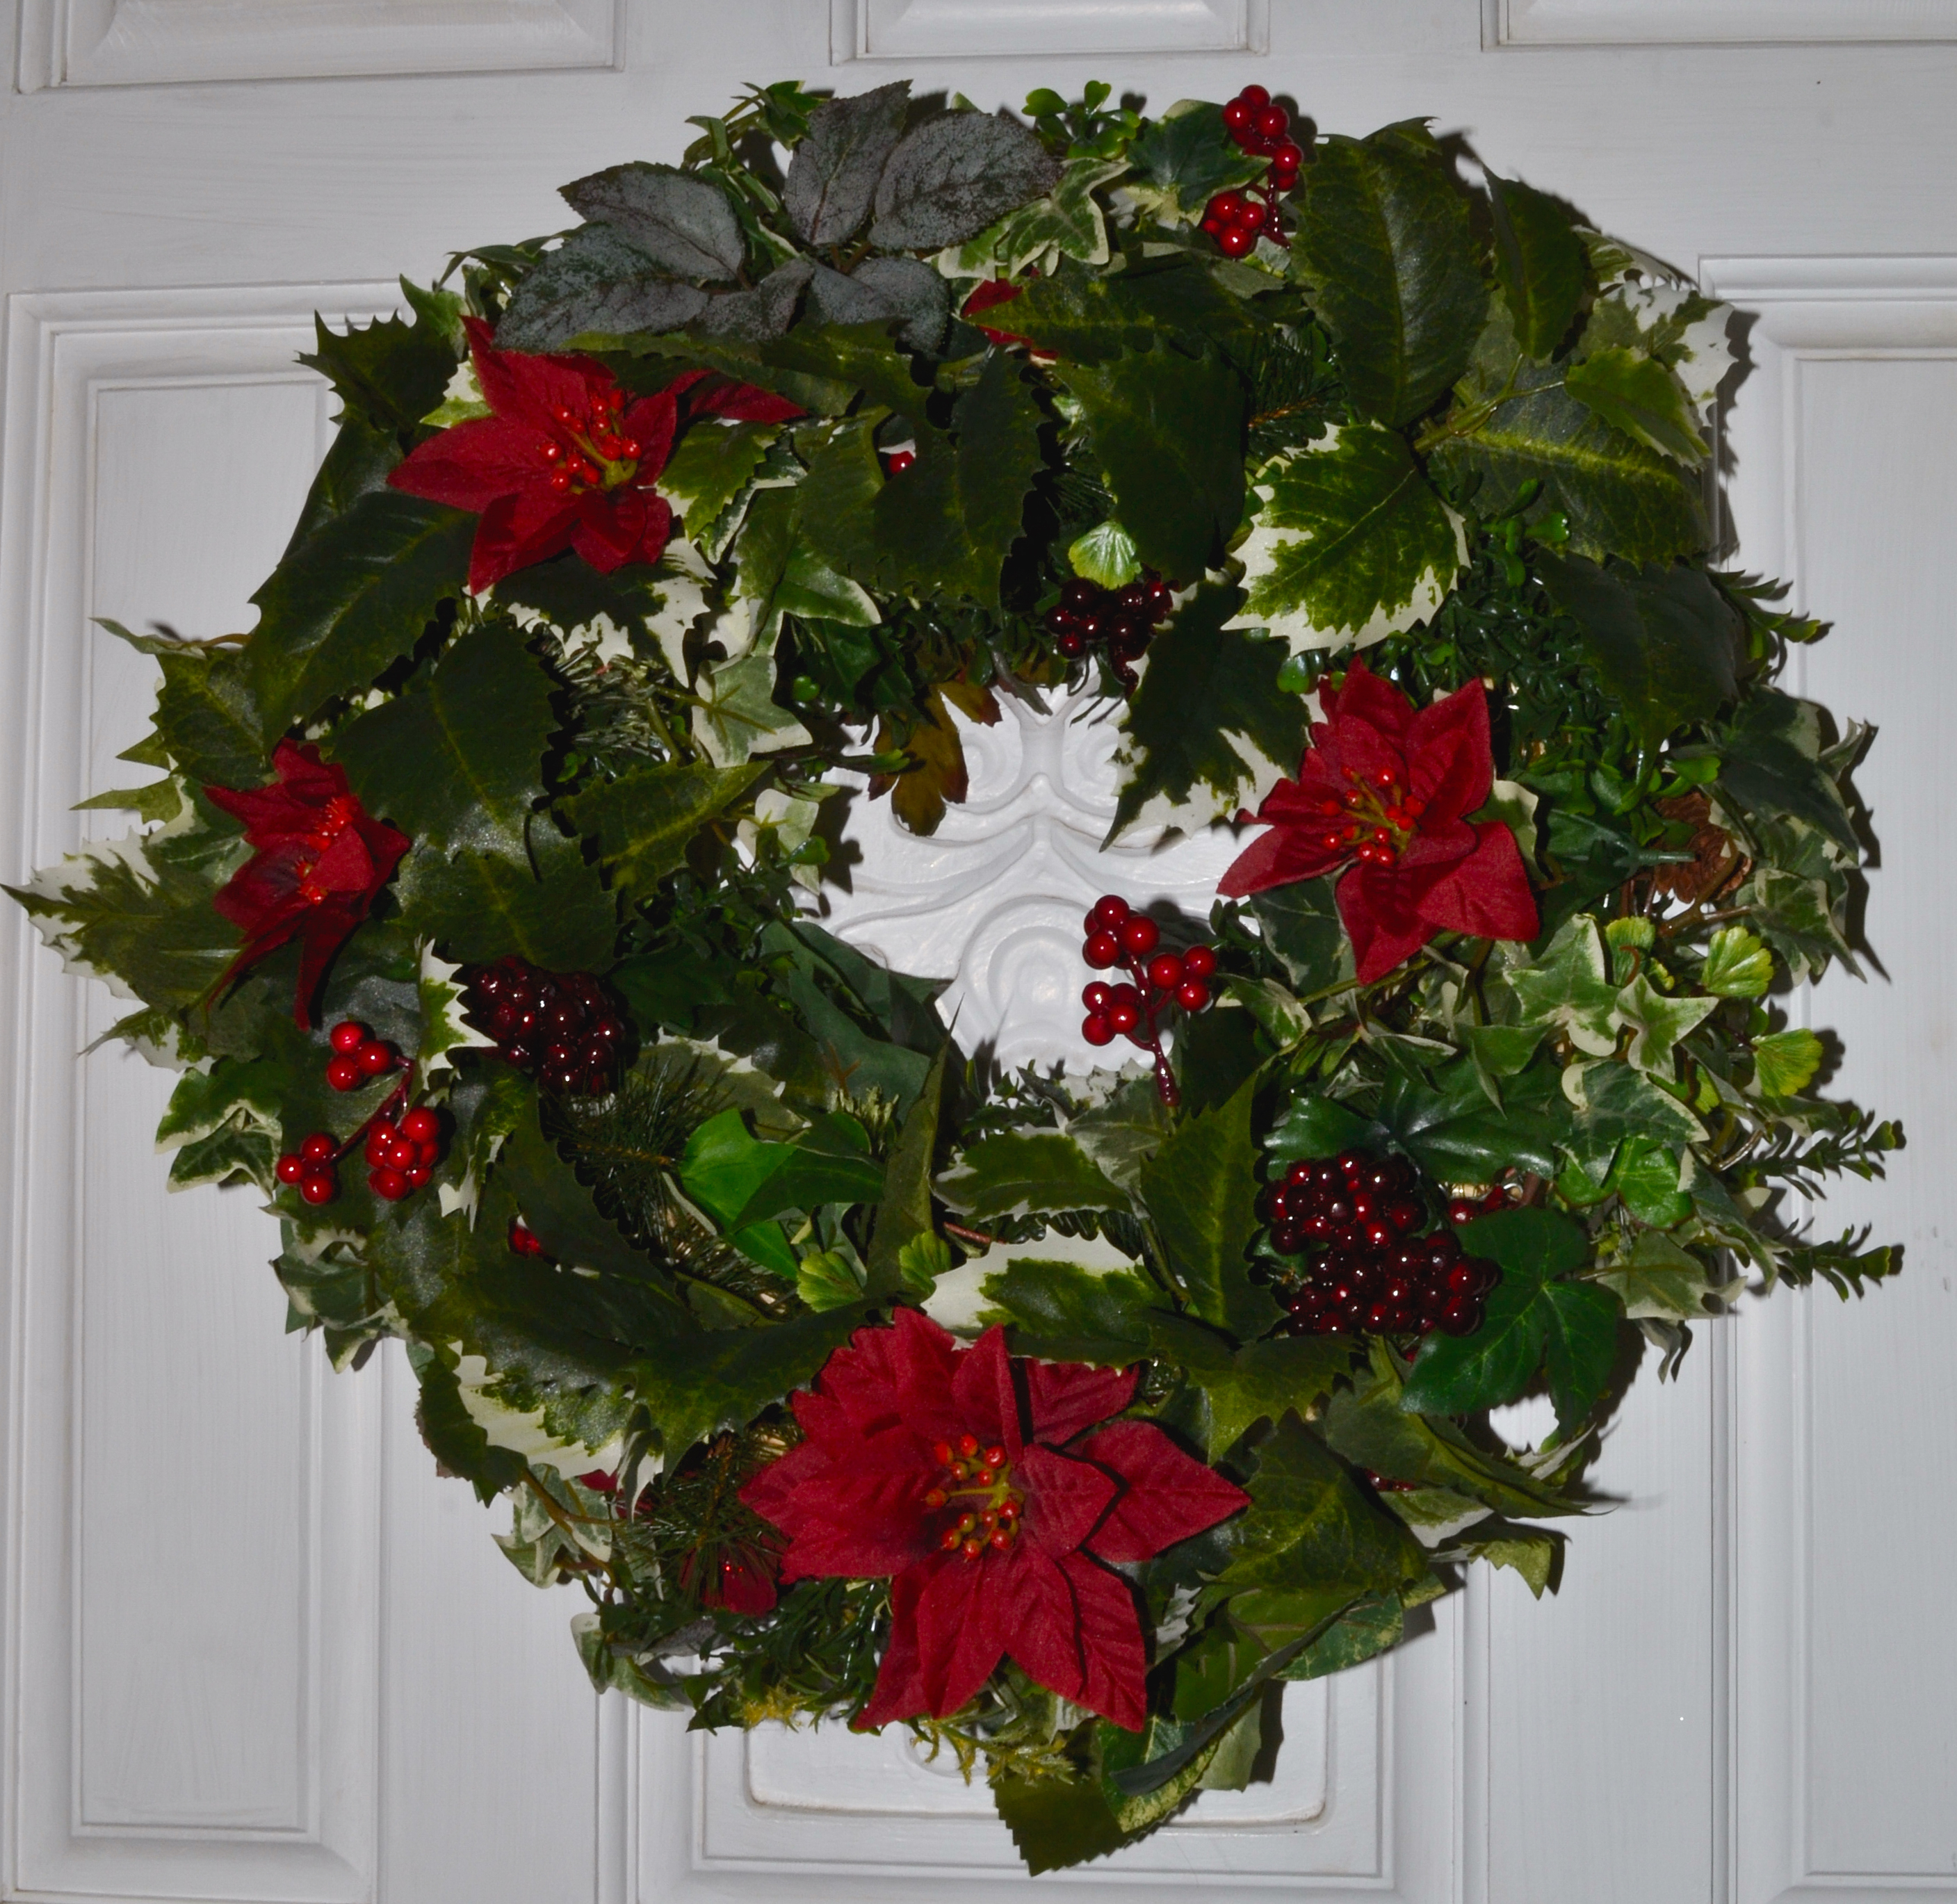 How To Make A Wreath Funtastic Unit Studies Home